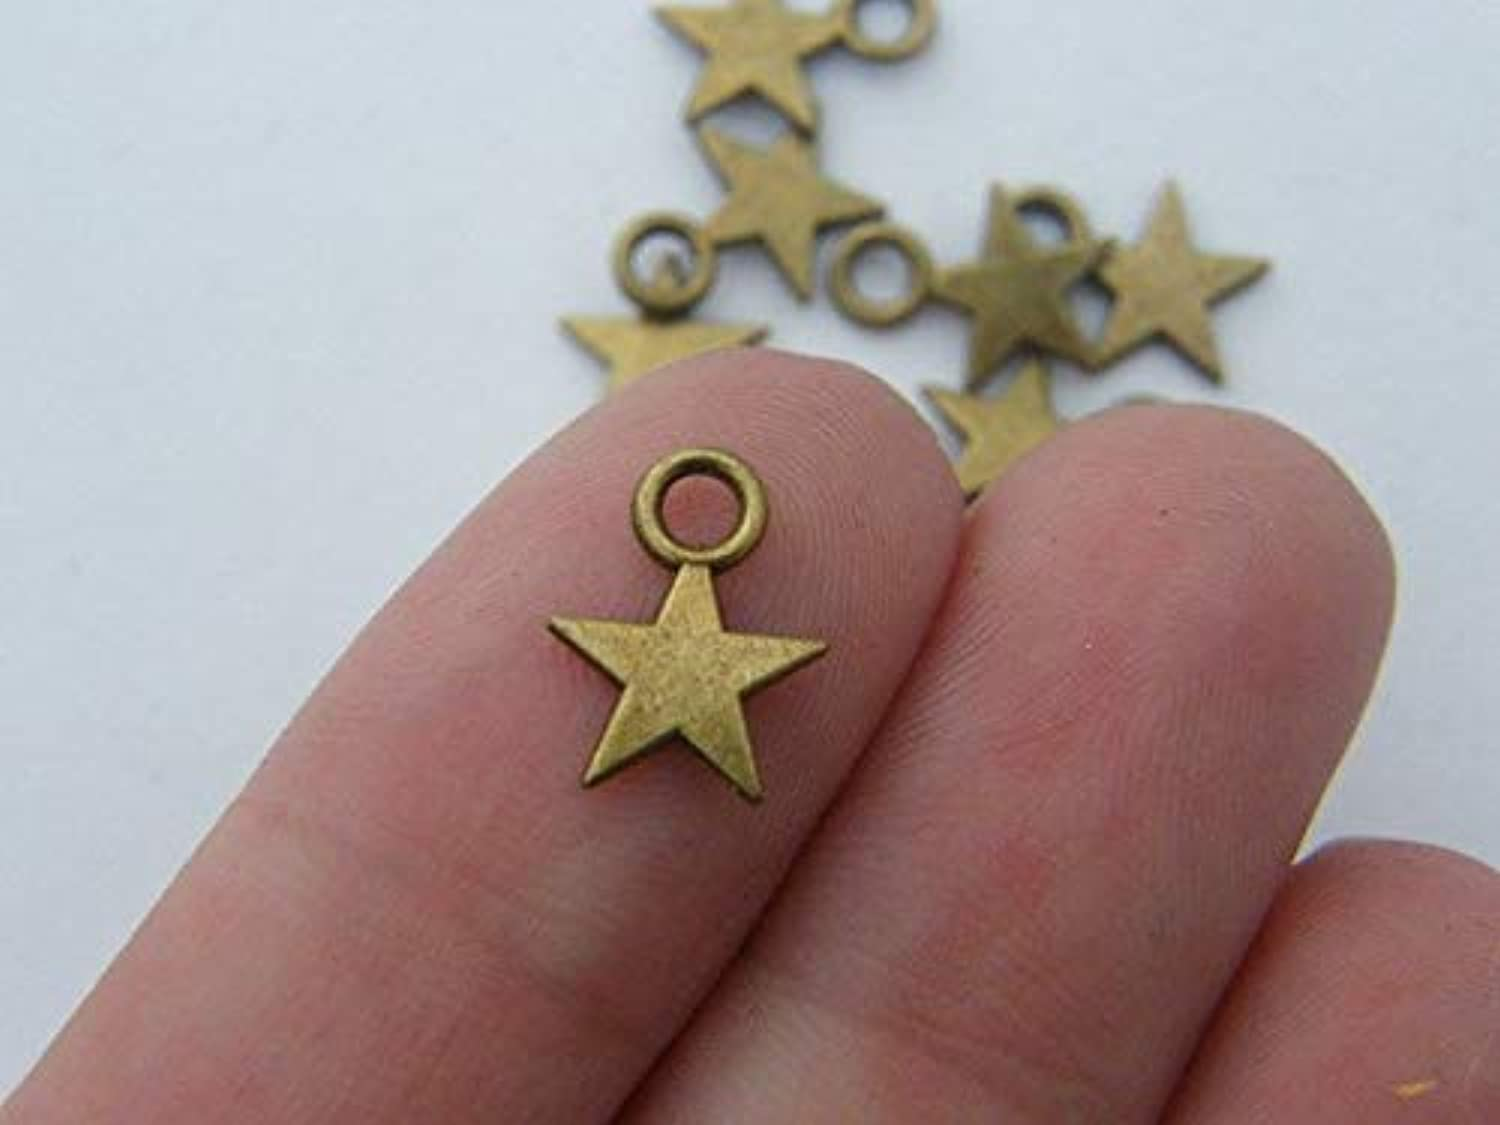 Bulk 50 Star Charms Antique Bronze Tone BC267 B0799RD8JJ | Marke